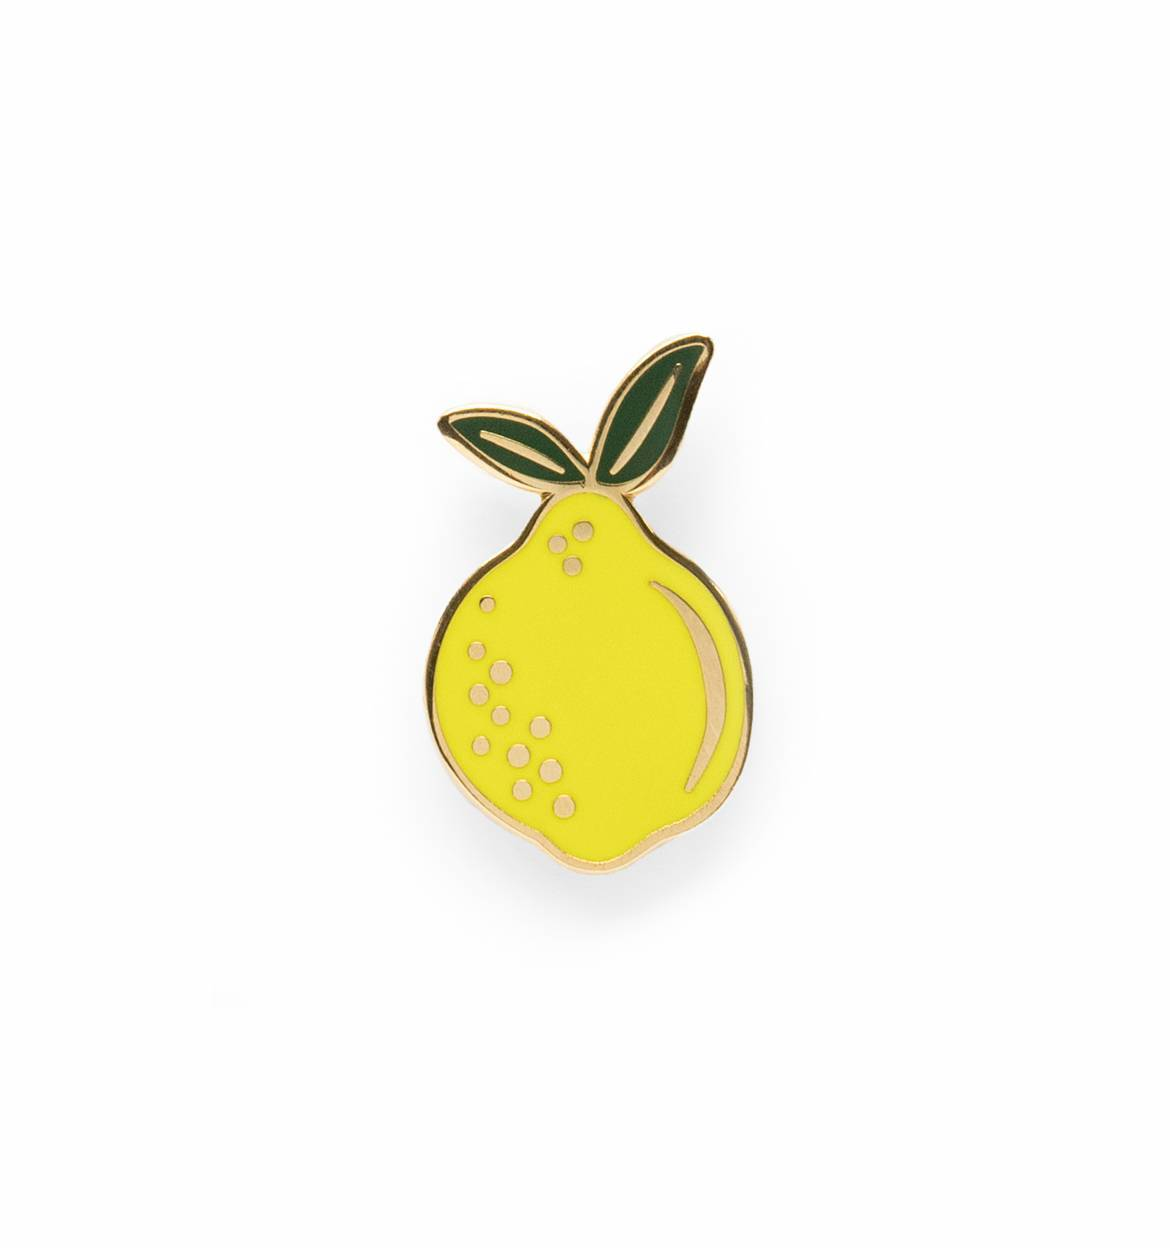 Lemon Enamel Pin